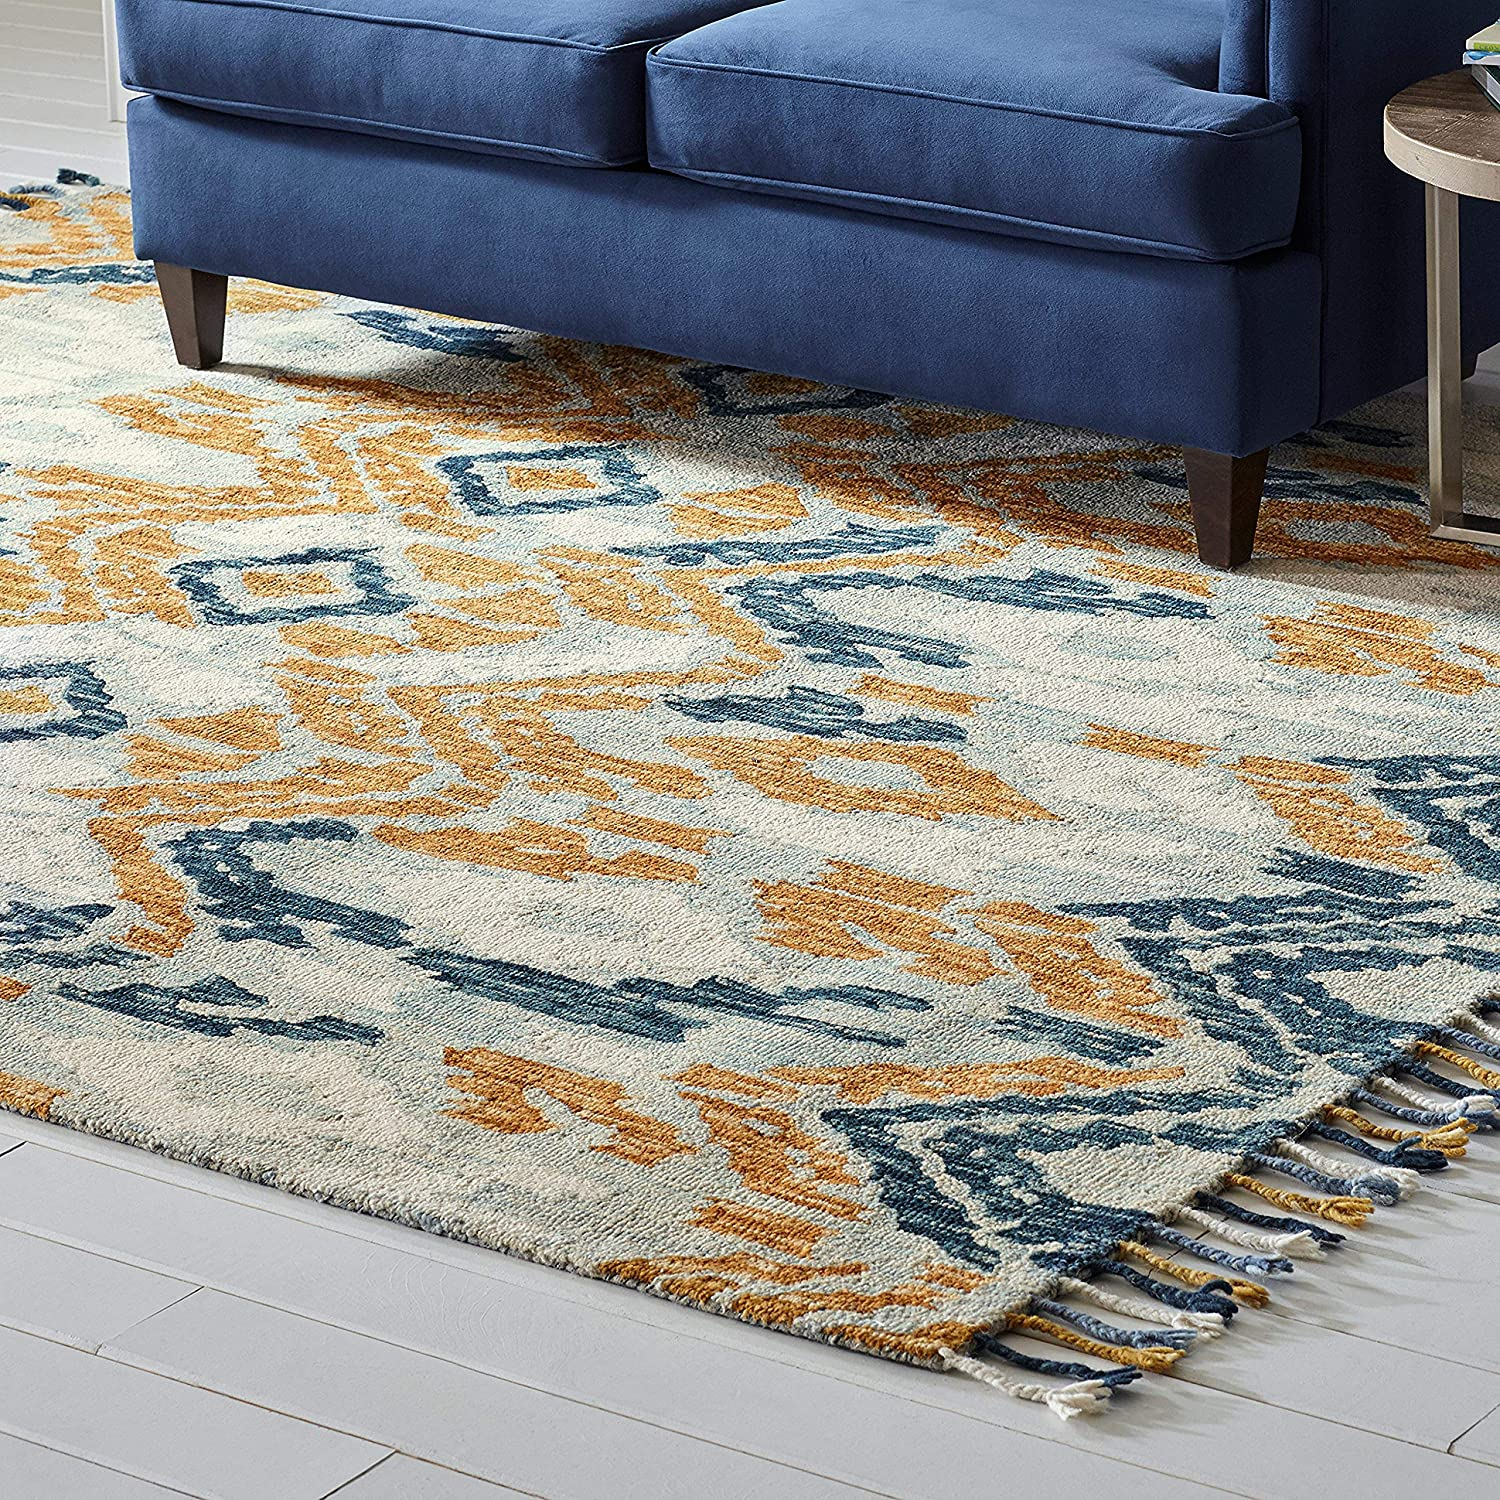 Stone & Beam Modern Global Ikat Wool Area Rug, 8 x 10 Foot, Blue